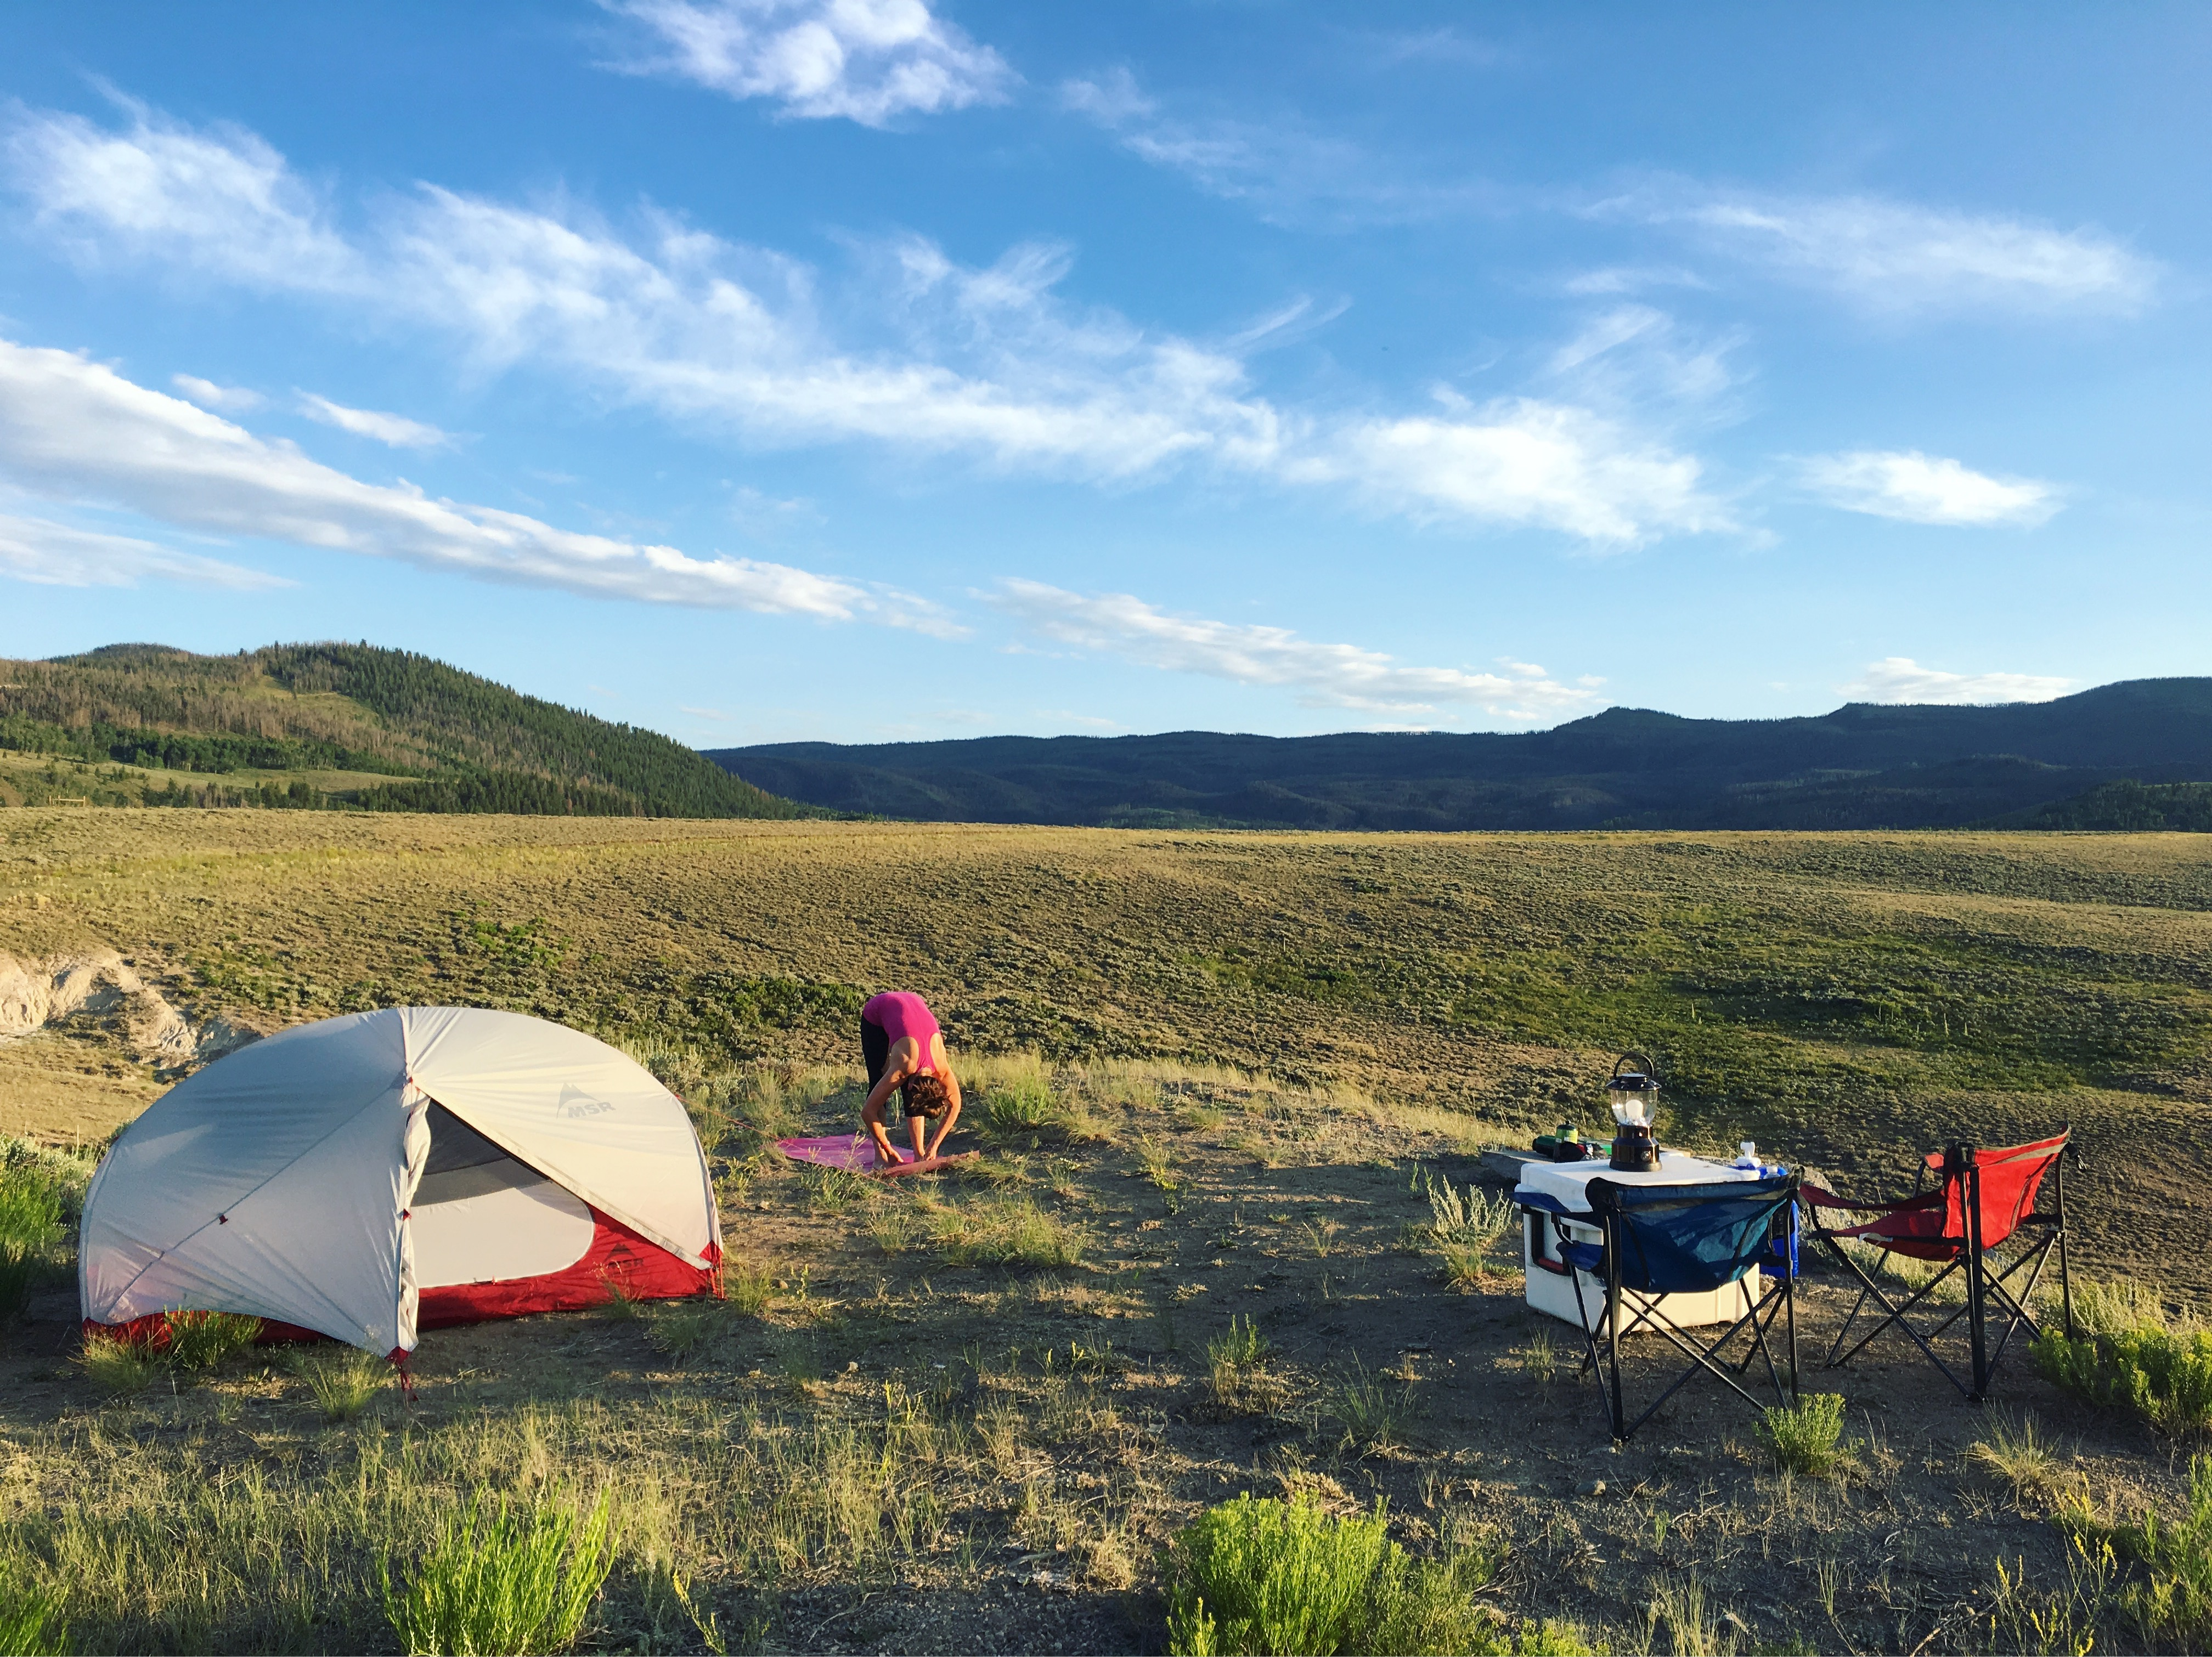 Buying a tent enables you to sleep almost anywhere! & Buying a Tent: How to Choose - Adventure Protocol